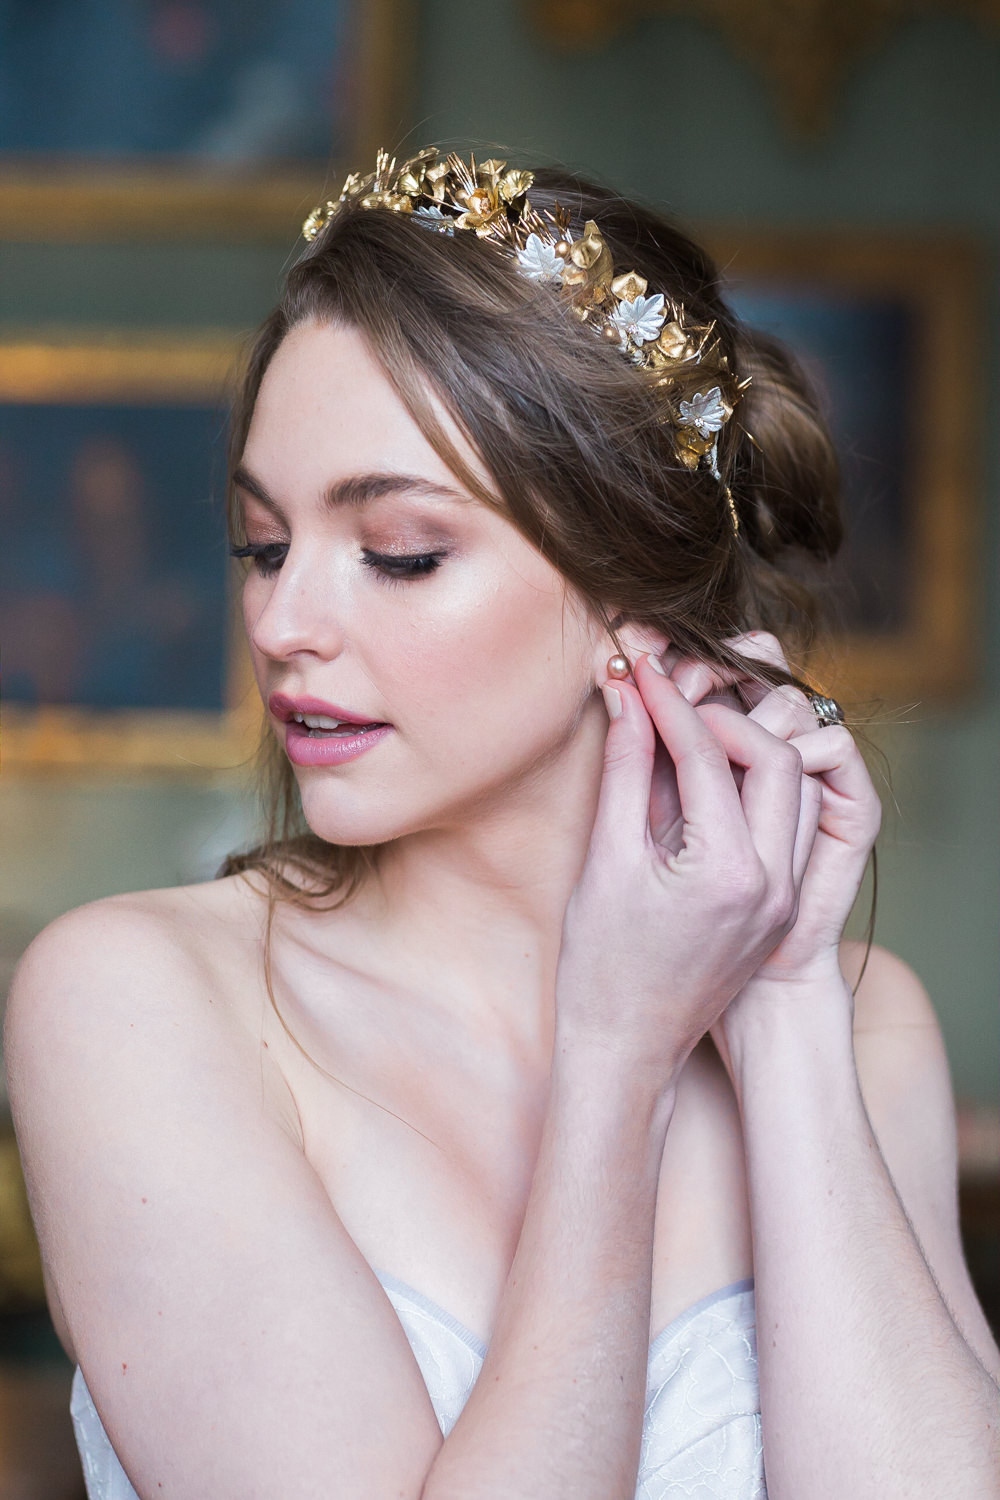 Modern Ballet Inspired Editorial Fine Art Somerley House Bride Lilac Dress Naomi Neoh Samantha Walden Gold Floral Headpiece Tiara Pearls | Romantic Soft Wedding Ideas Siobhan H Photography